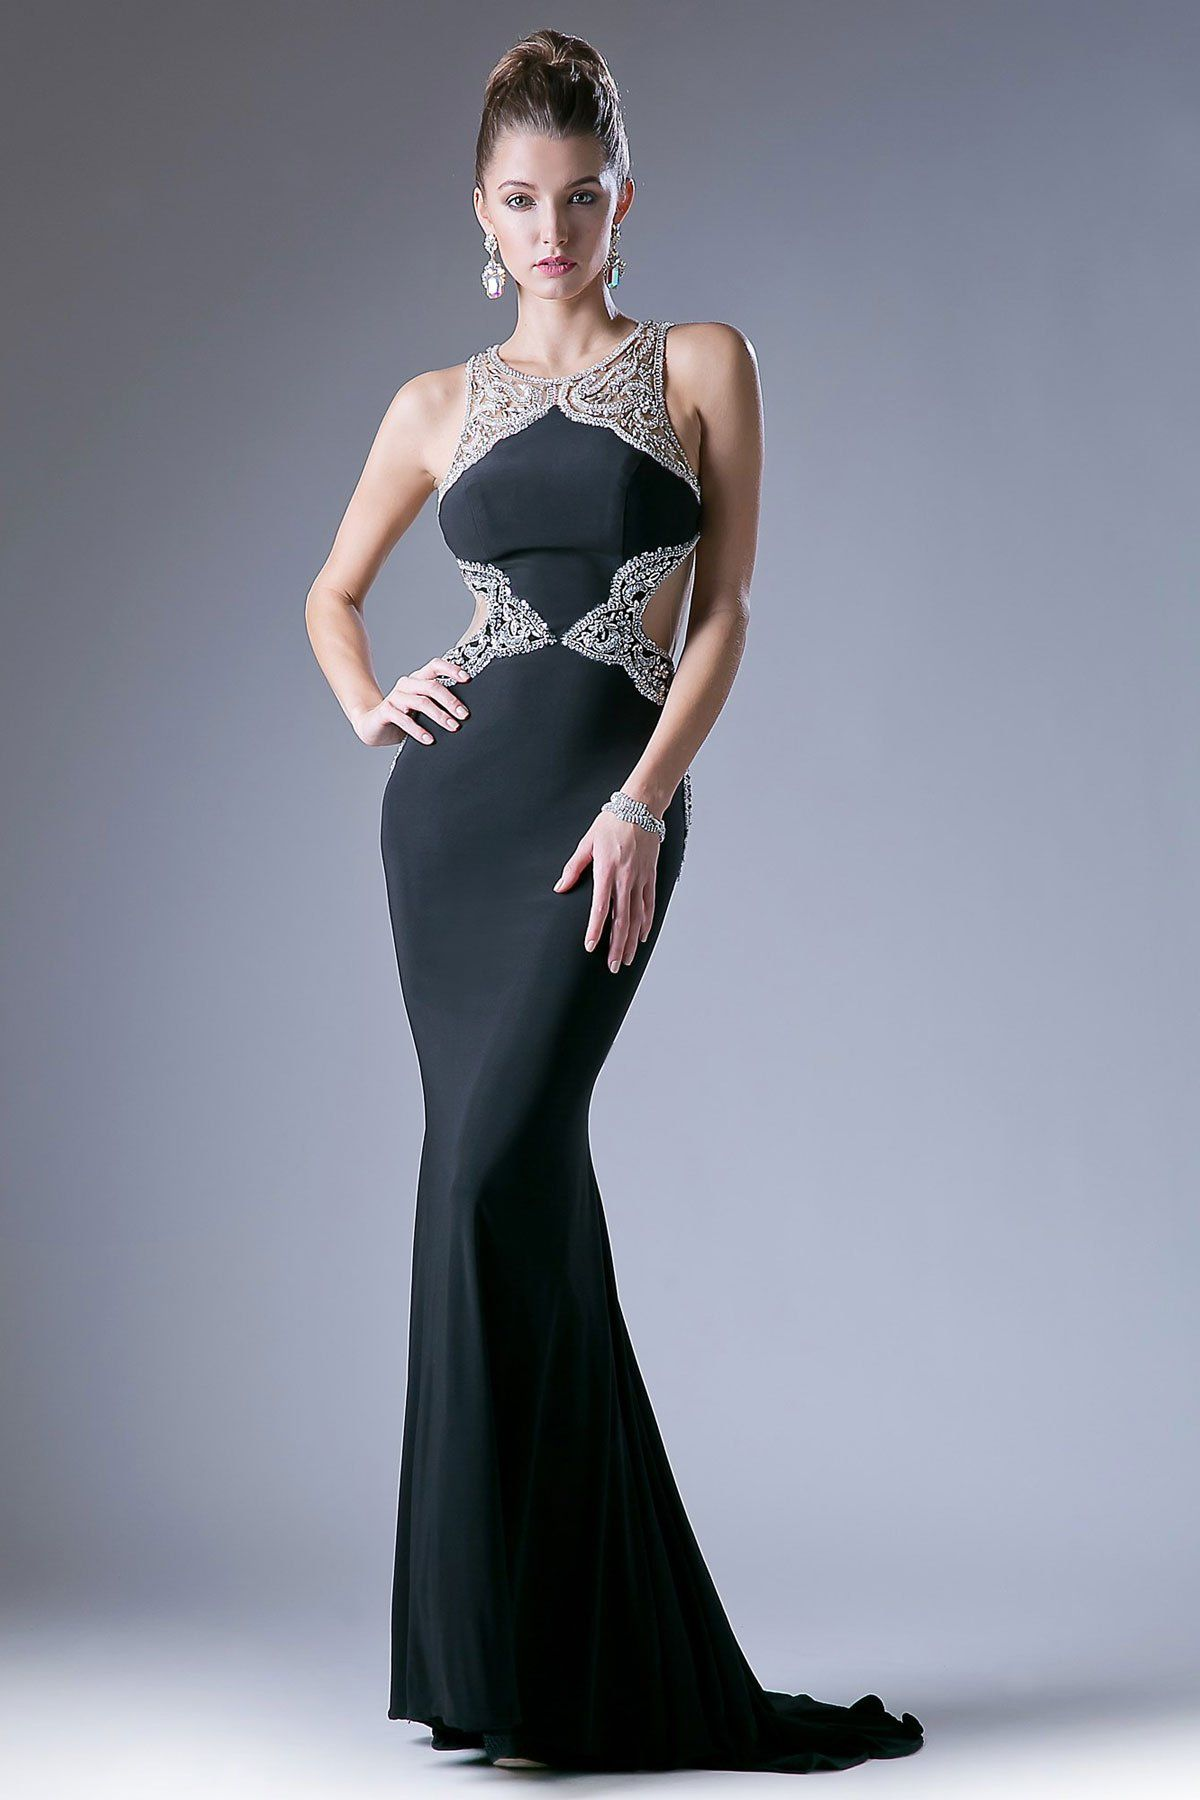 Evening gown cdml illusions bodice and neckline